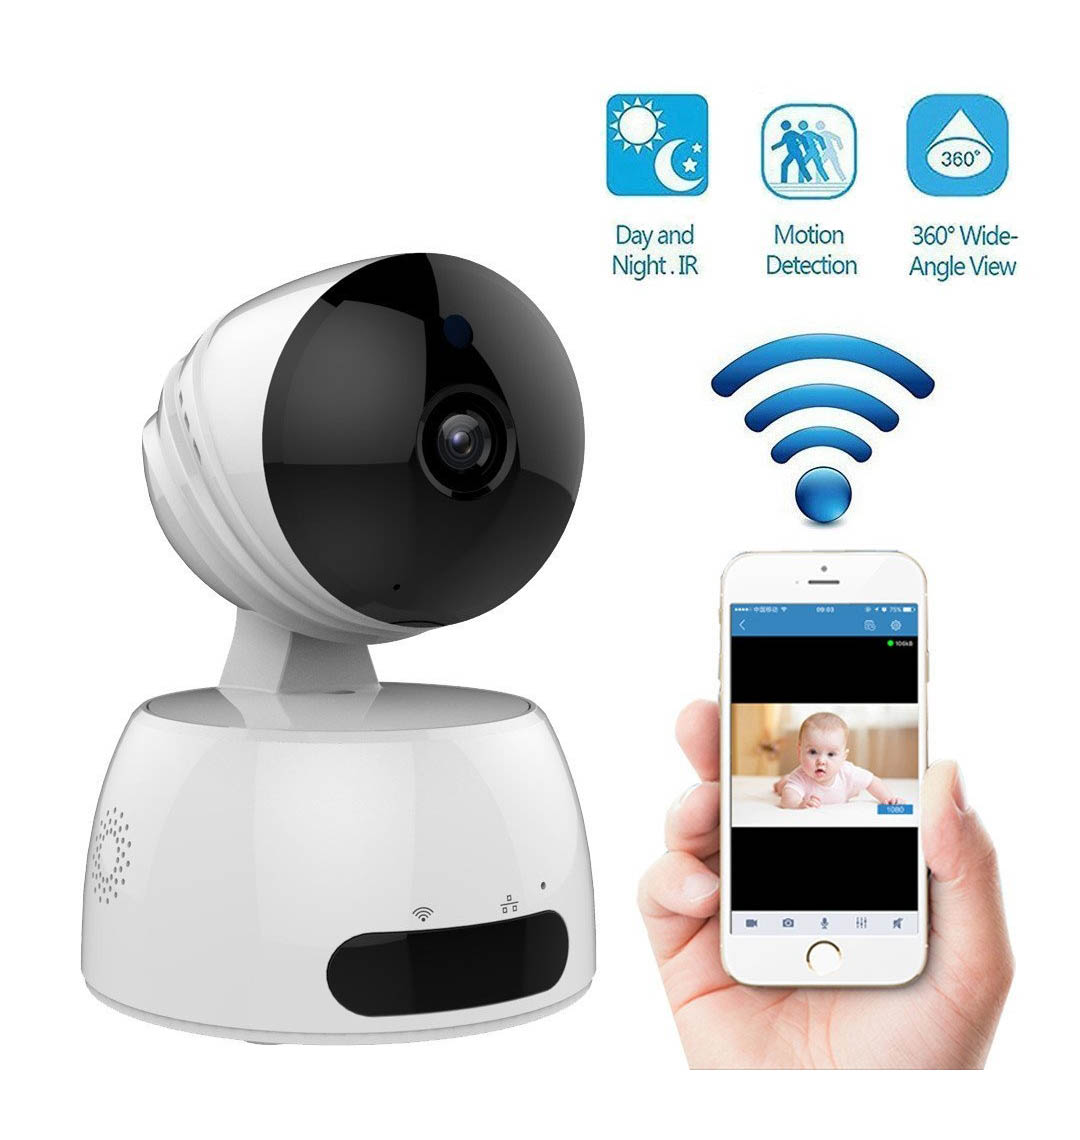 9caf34c1c WIRELESS WIFI HD IP CCTV INDOOR SECURITY CAMERA WITH SD CARD SLOT ...